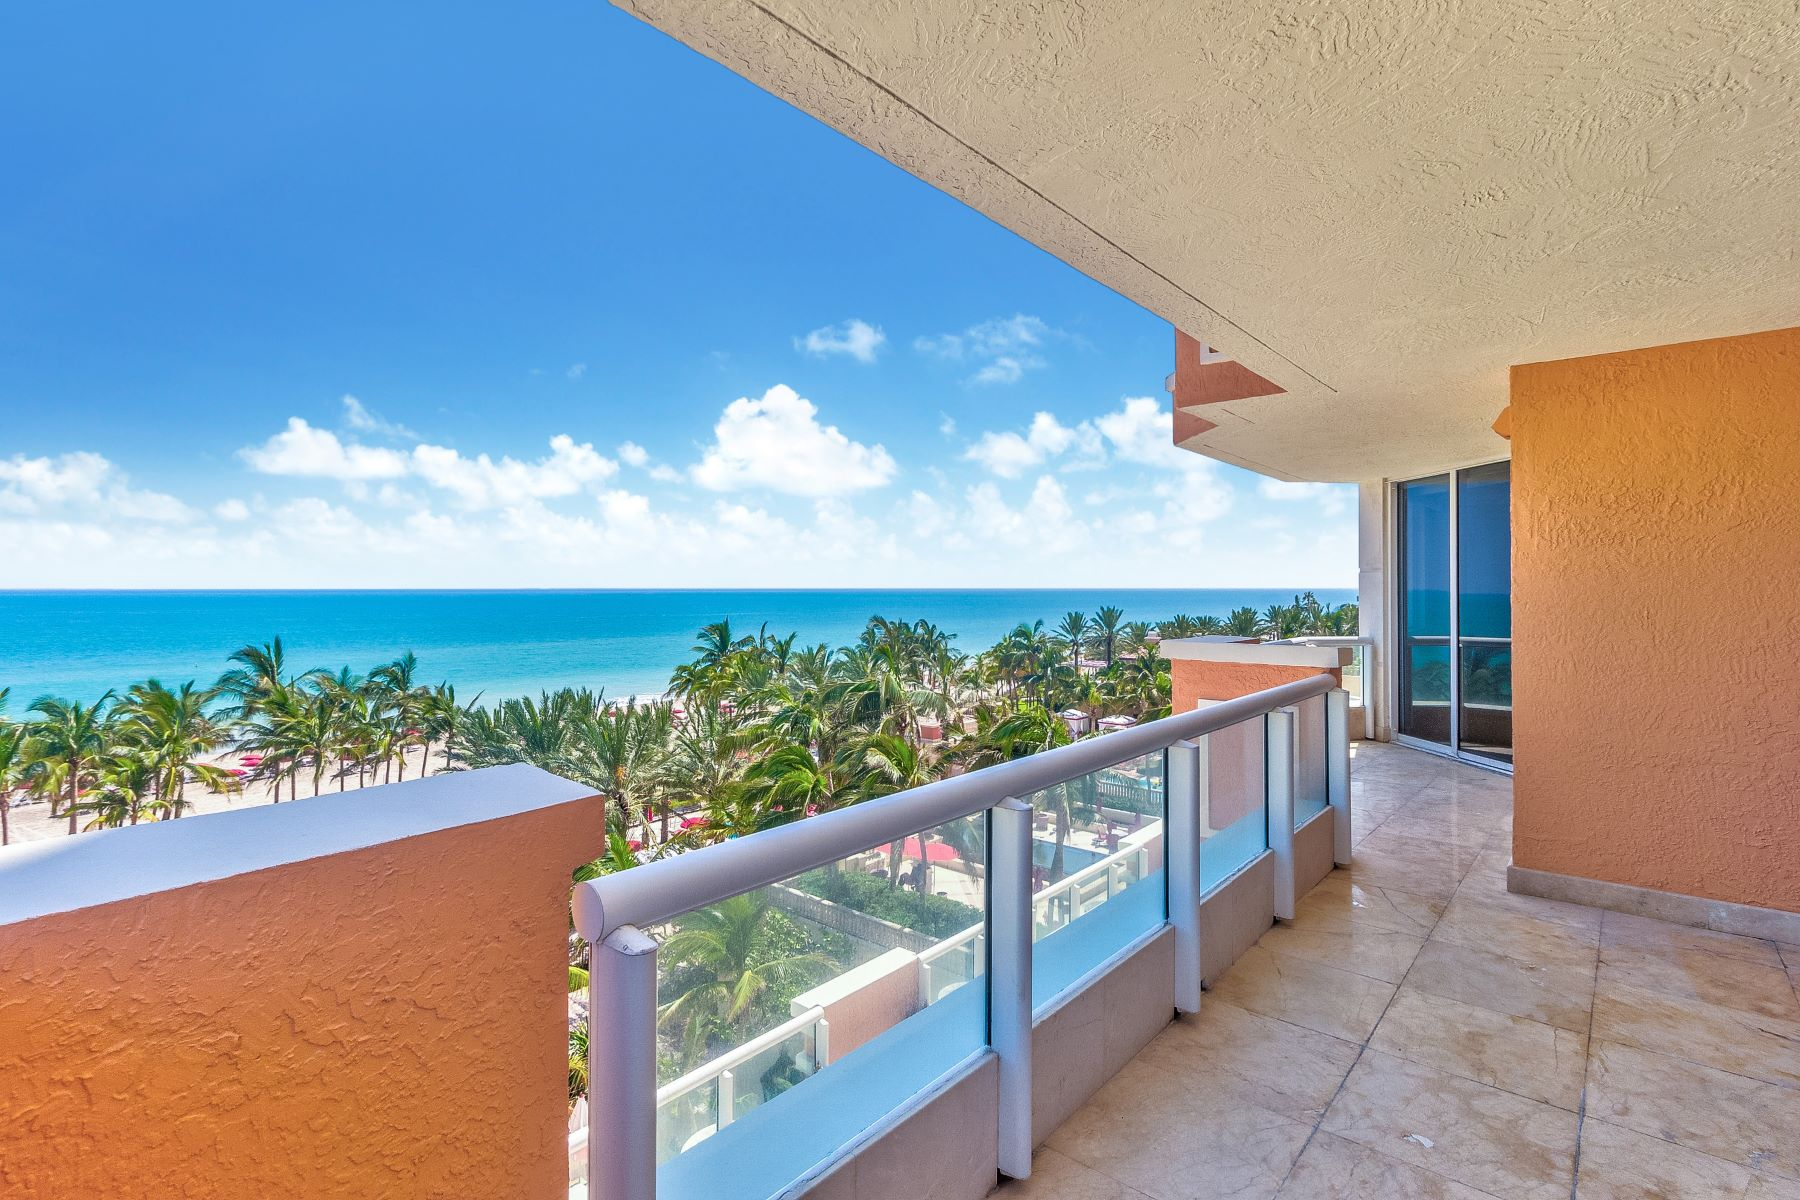 Condominium for Sale at 17875 Collins Ave 17875 Collins Ave 601, Sunny Isles Beach, Florida, 33160 United States